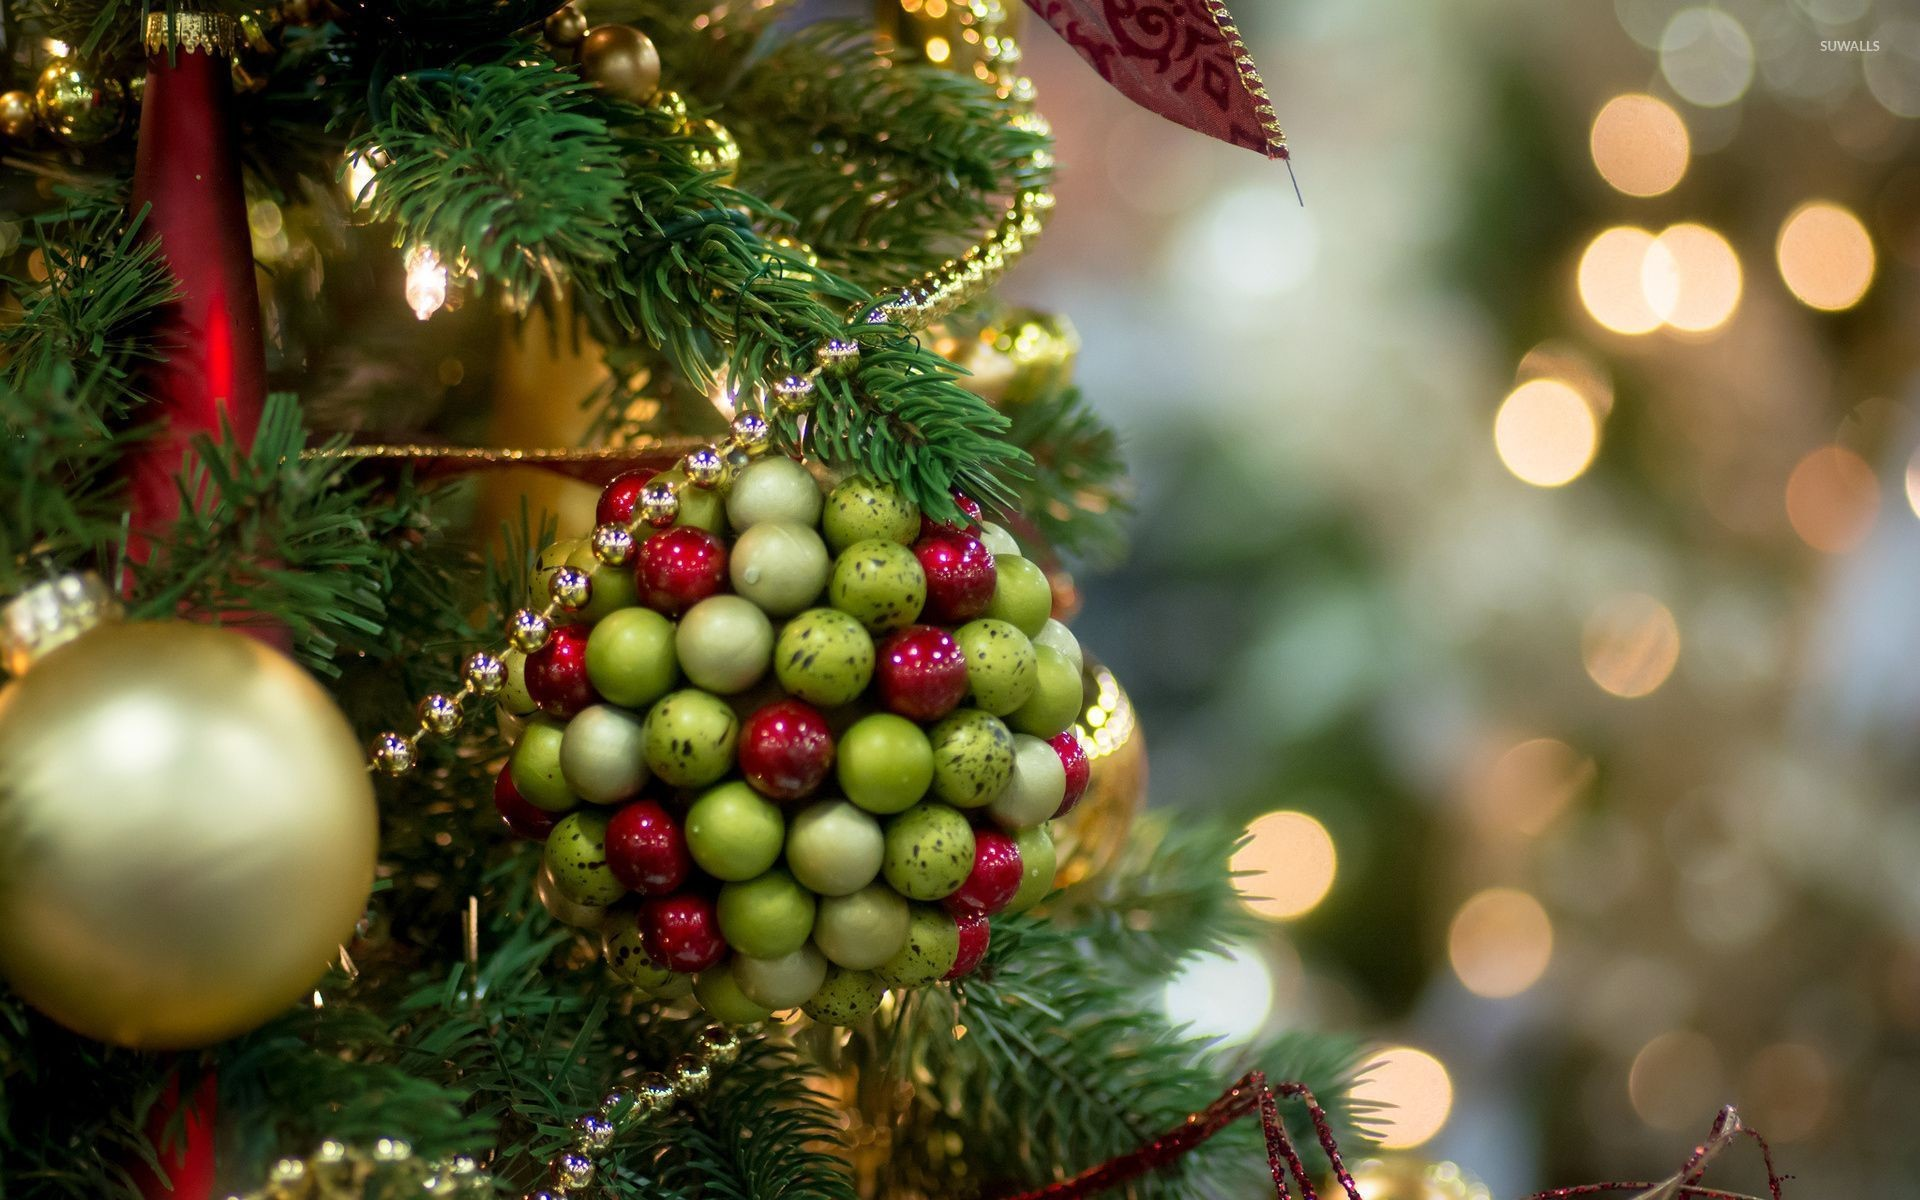 Red and green marbles on the bauble wallpaper